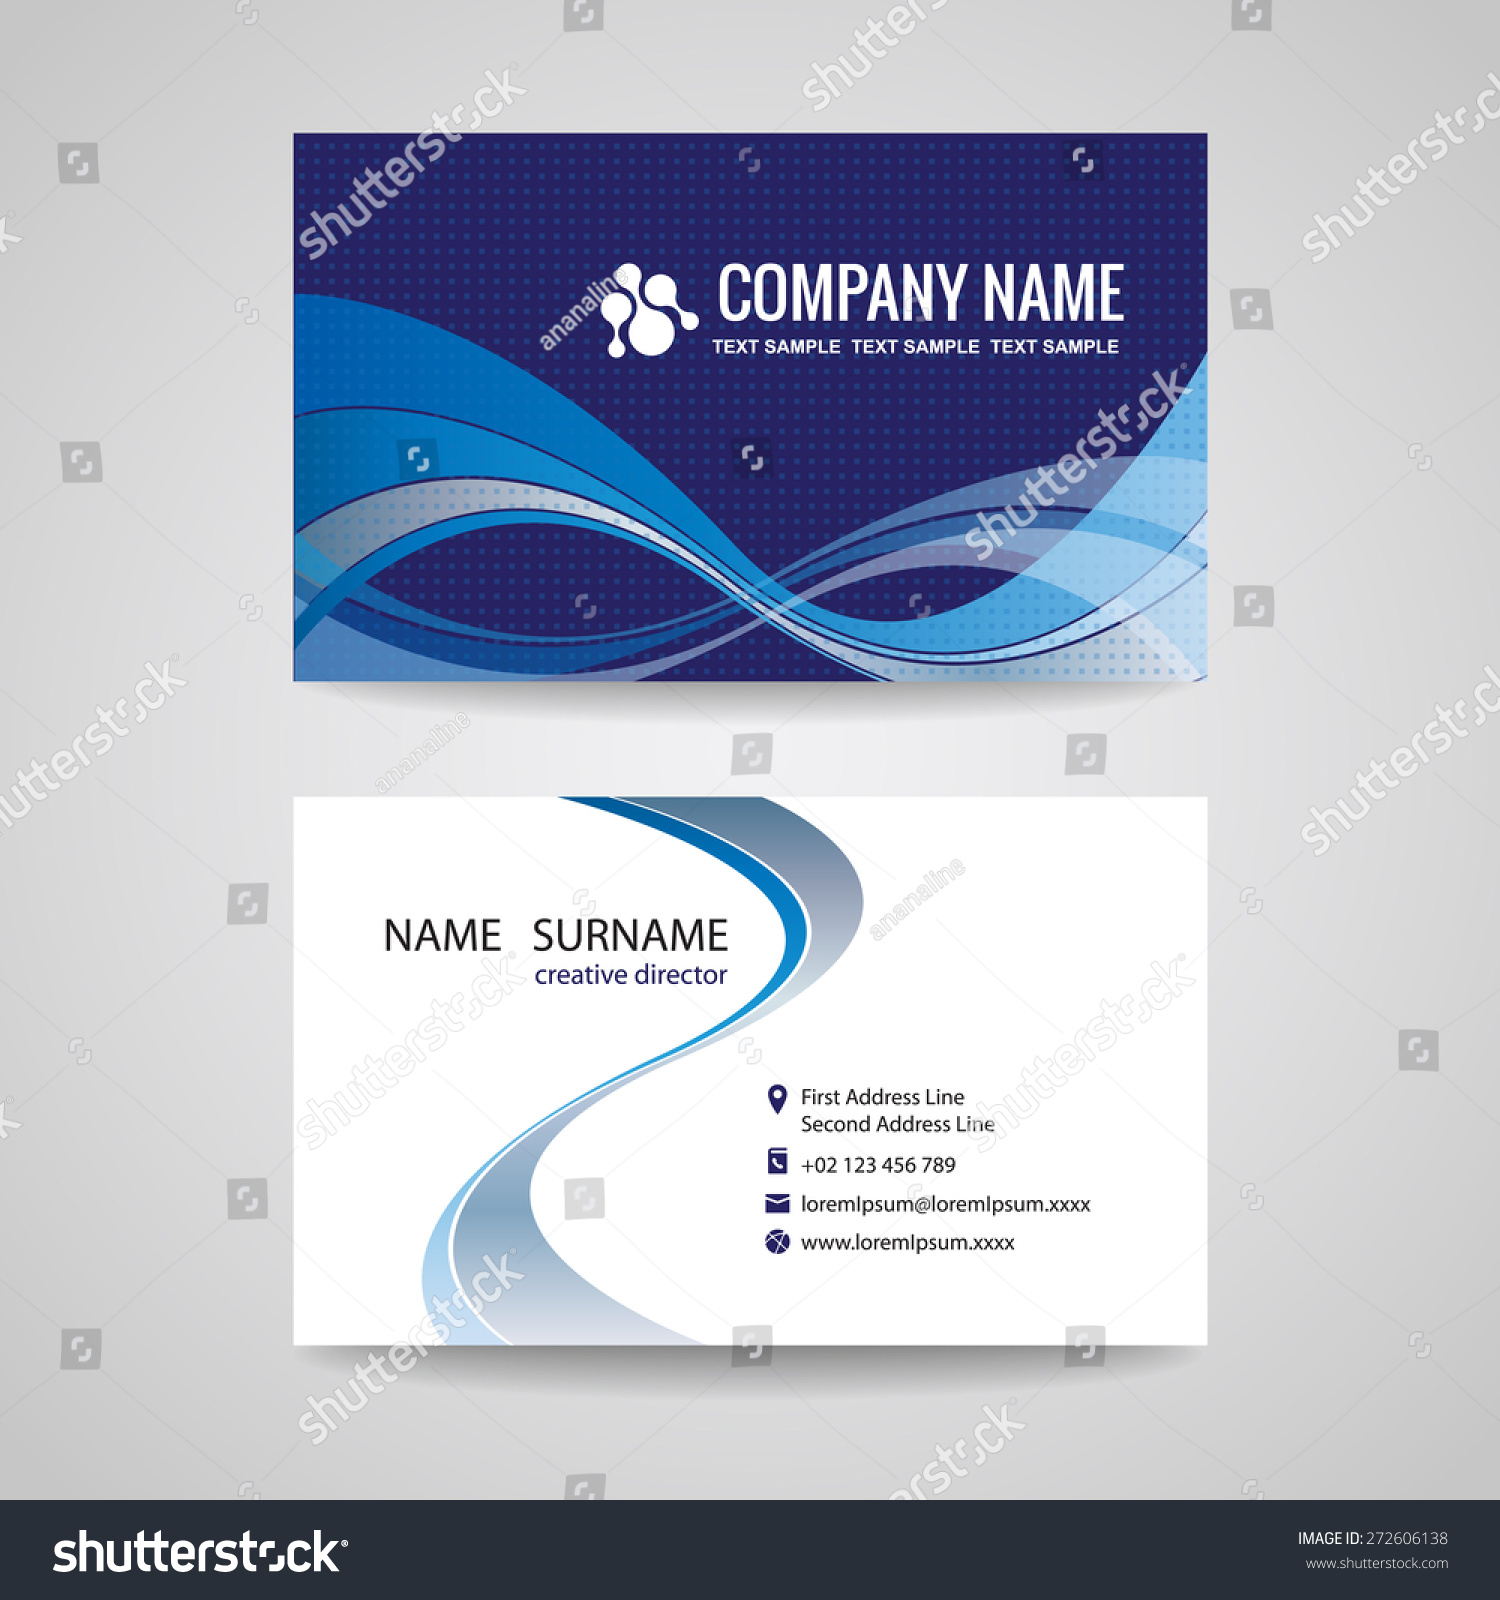 Business Card Background Template Abstract Blue Stock Vector ...